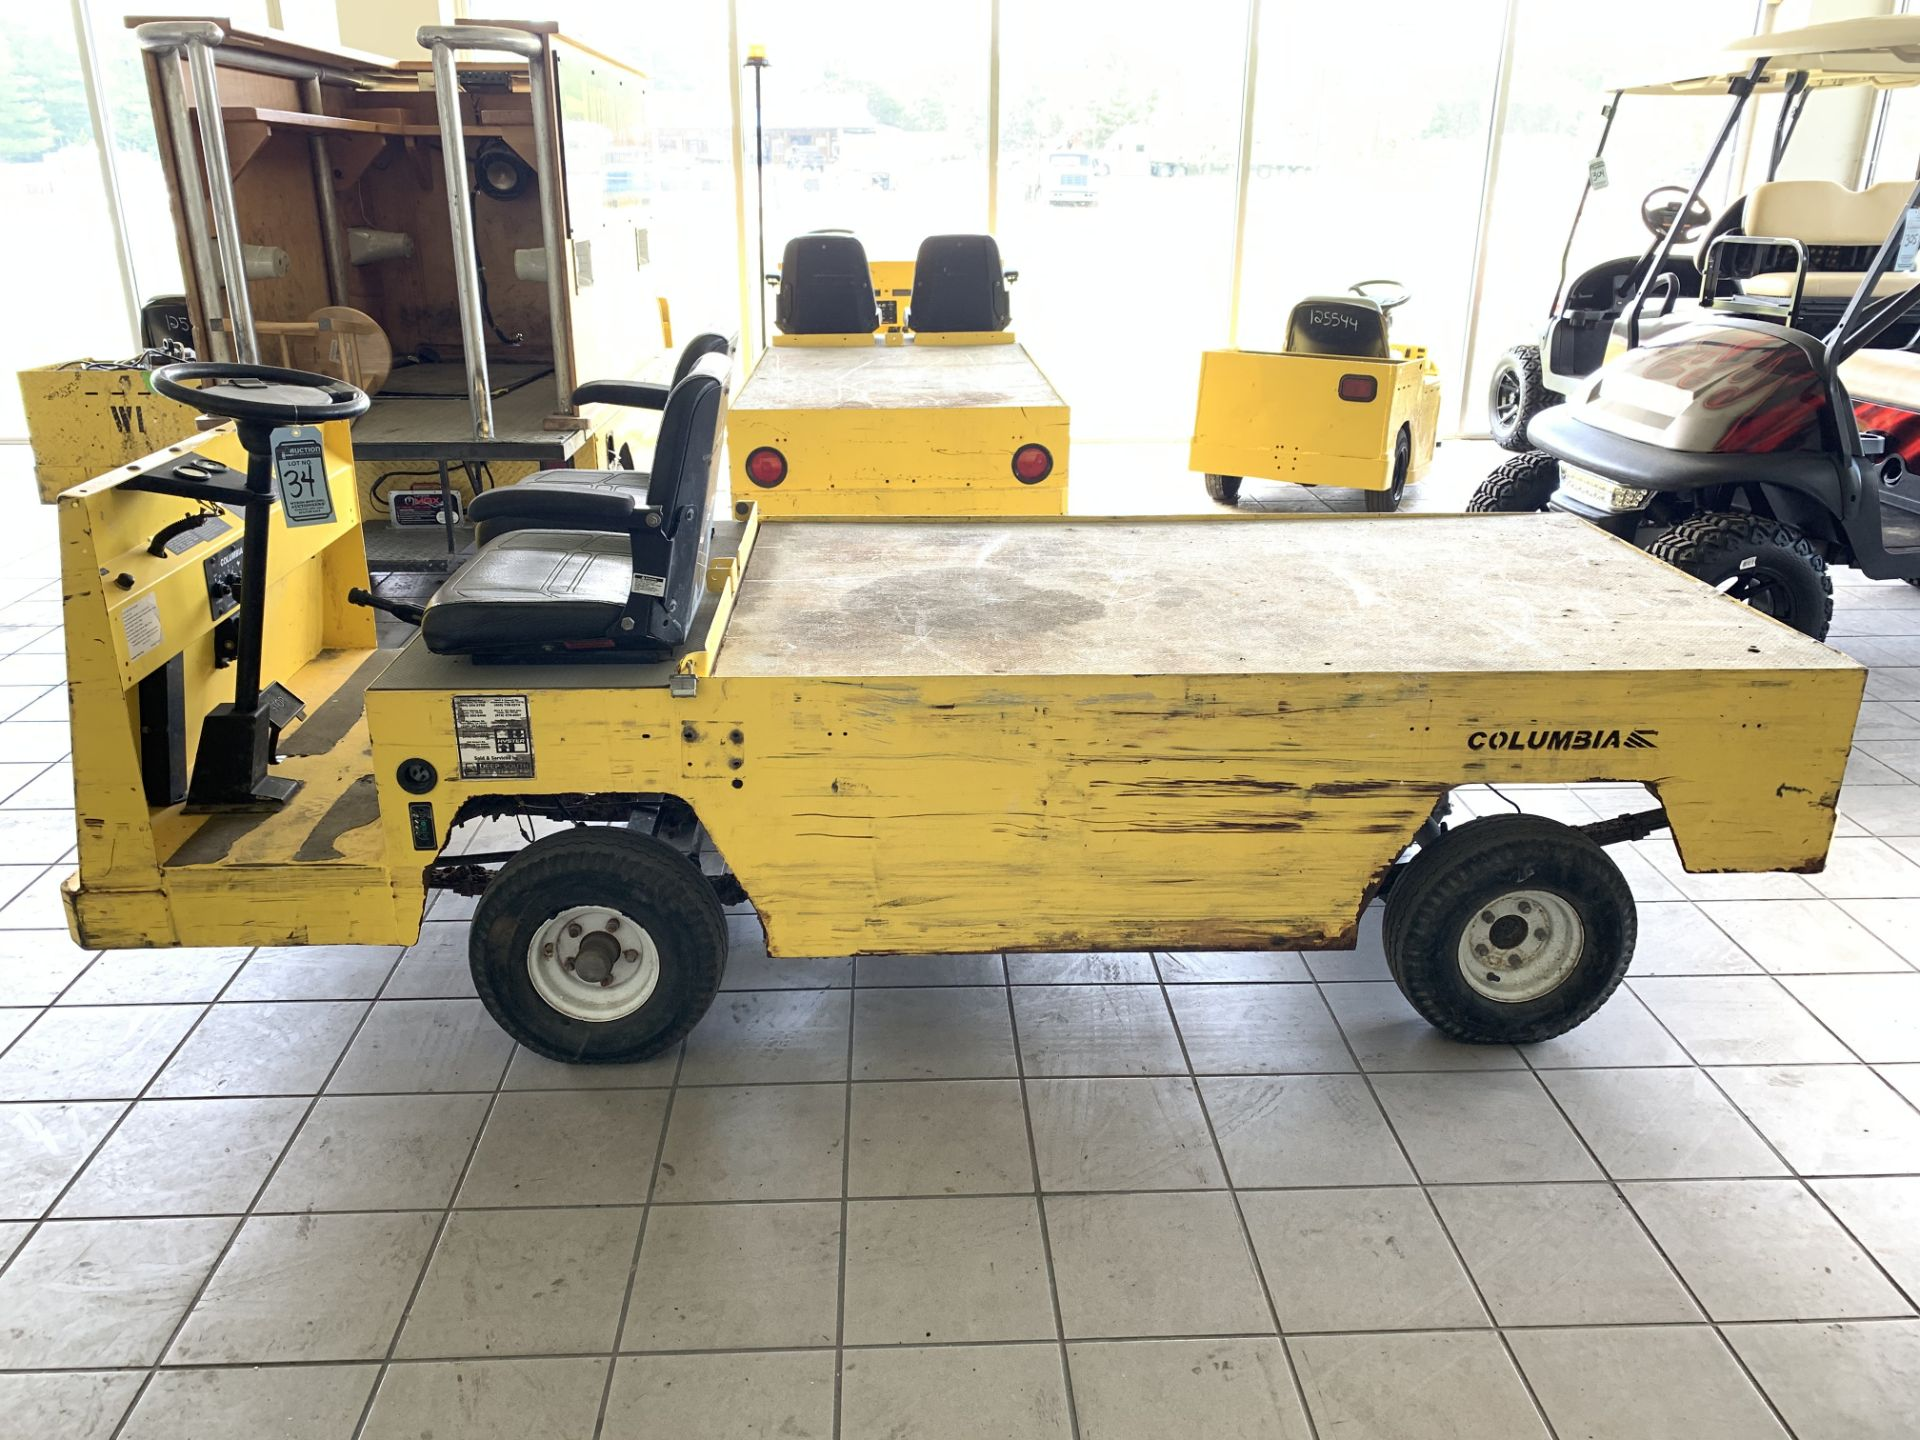 Lot 34 - 2016 COLUMBIA MAINTENANCE CART, MOD: BC3-L-36, 36-VOLT, ON-BOARD CHARGER, 472 HOURS, RUNS & OPERATES